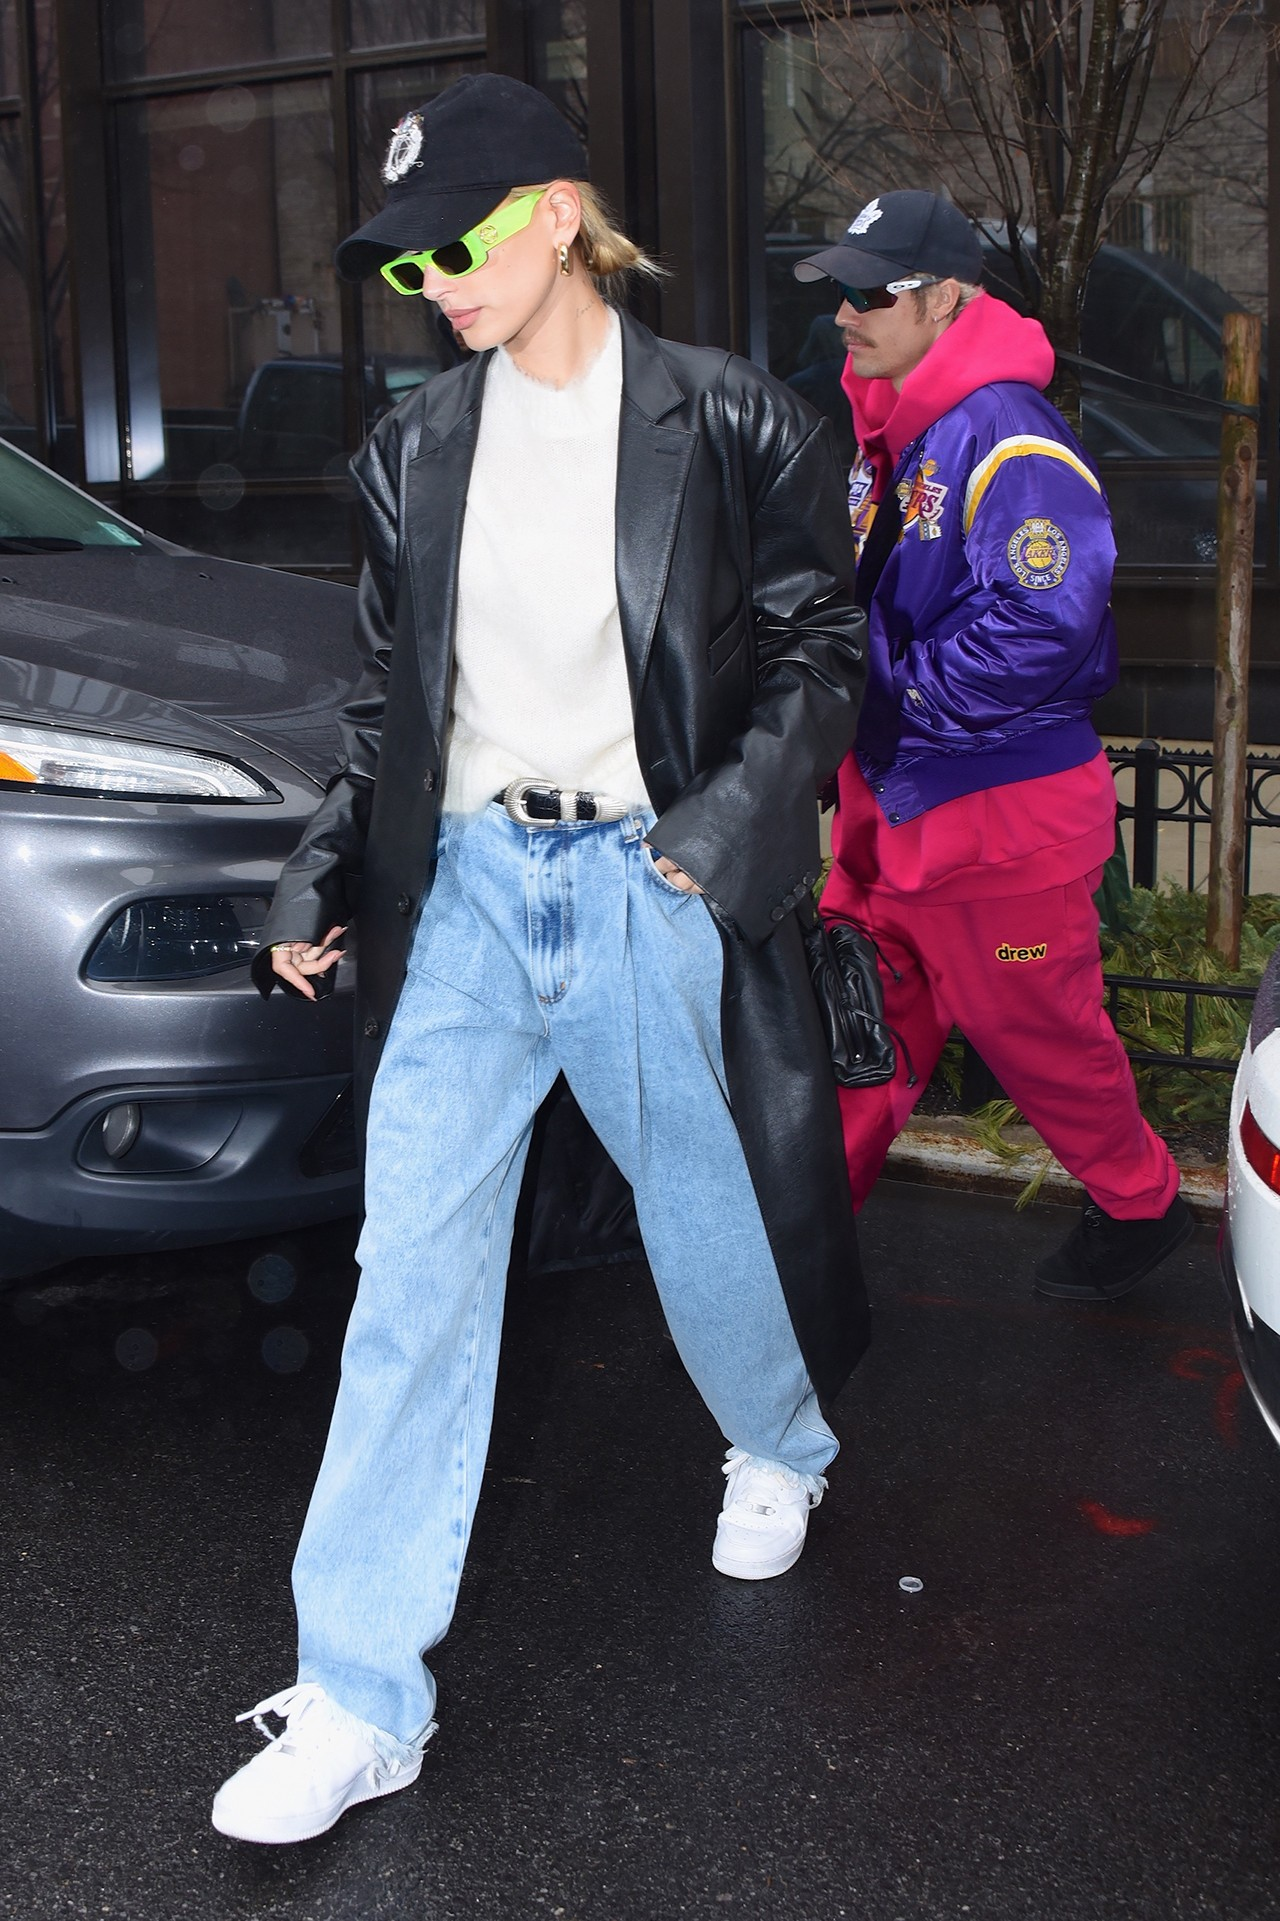 Justin Bieber Hailey Baldwin Husband Wife Celebrity Couple Red Carpet Fashion Looks Street Style Outfits Changes Documentary Premiere